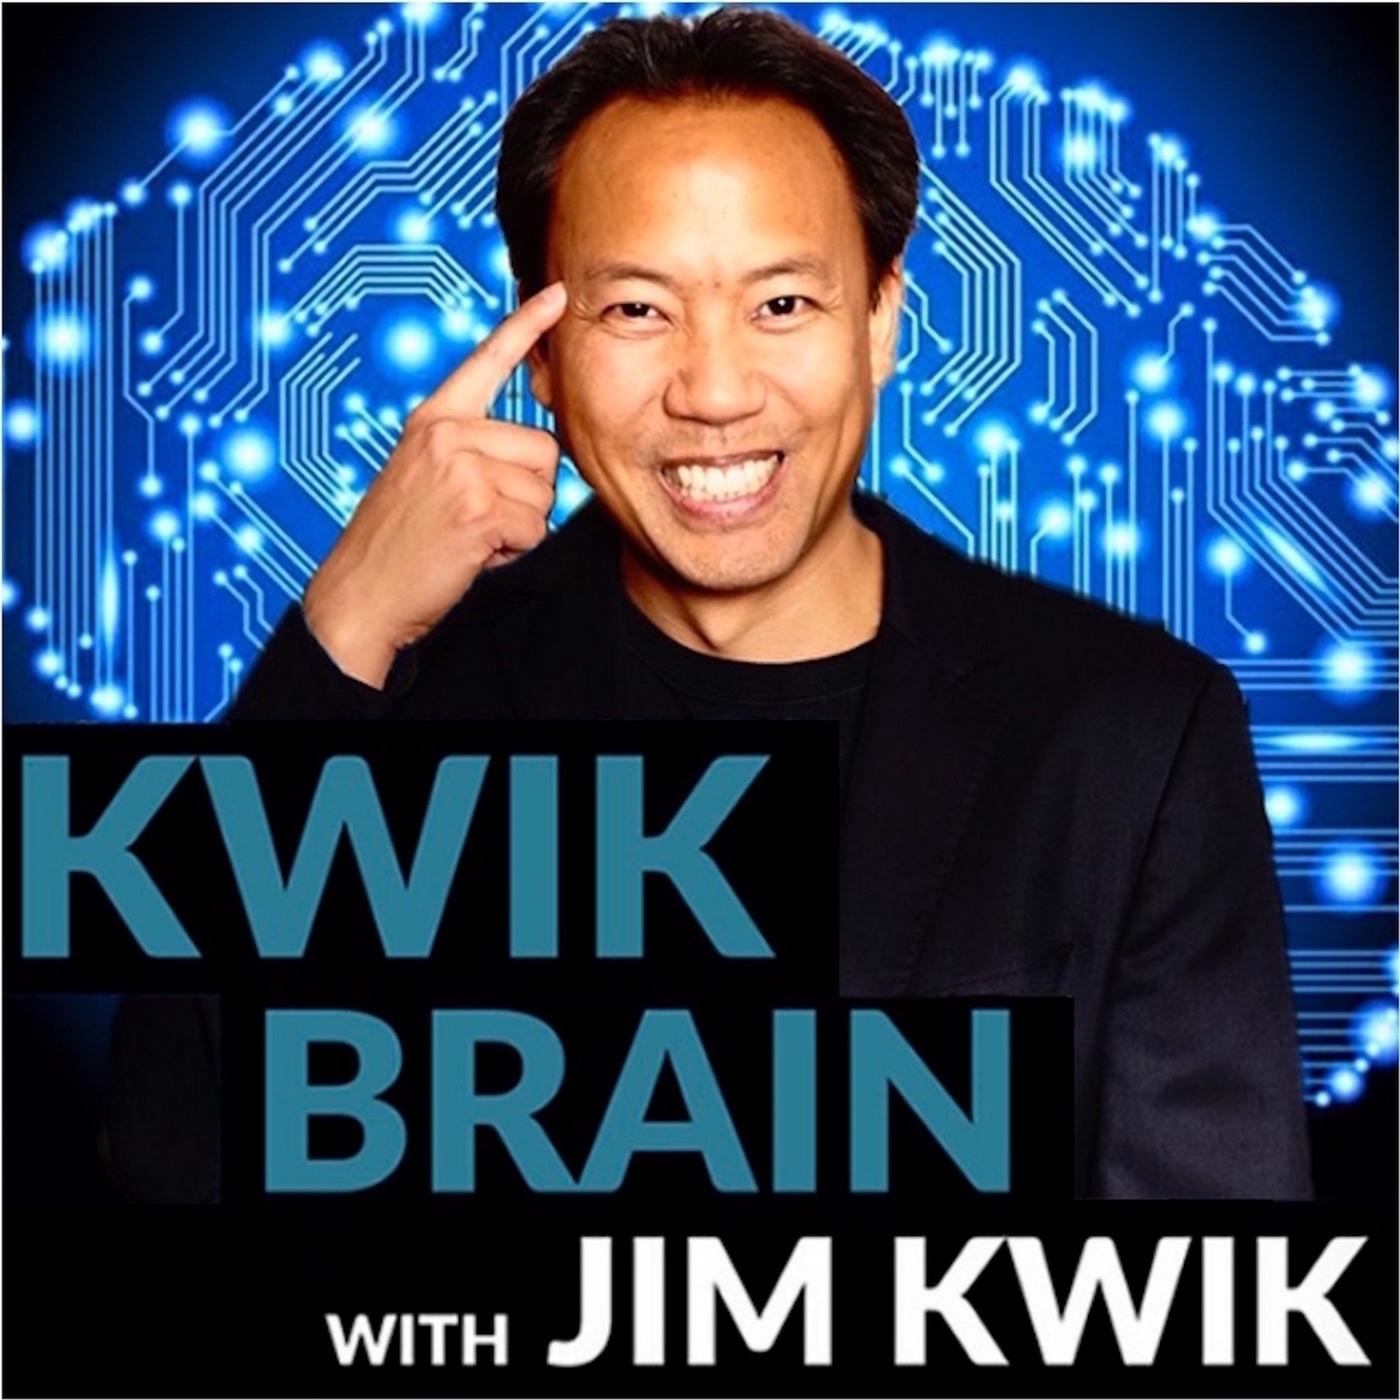 Kwik Brain 004: Read 1 Book A Week (52 Books A Year)…Without